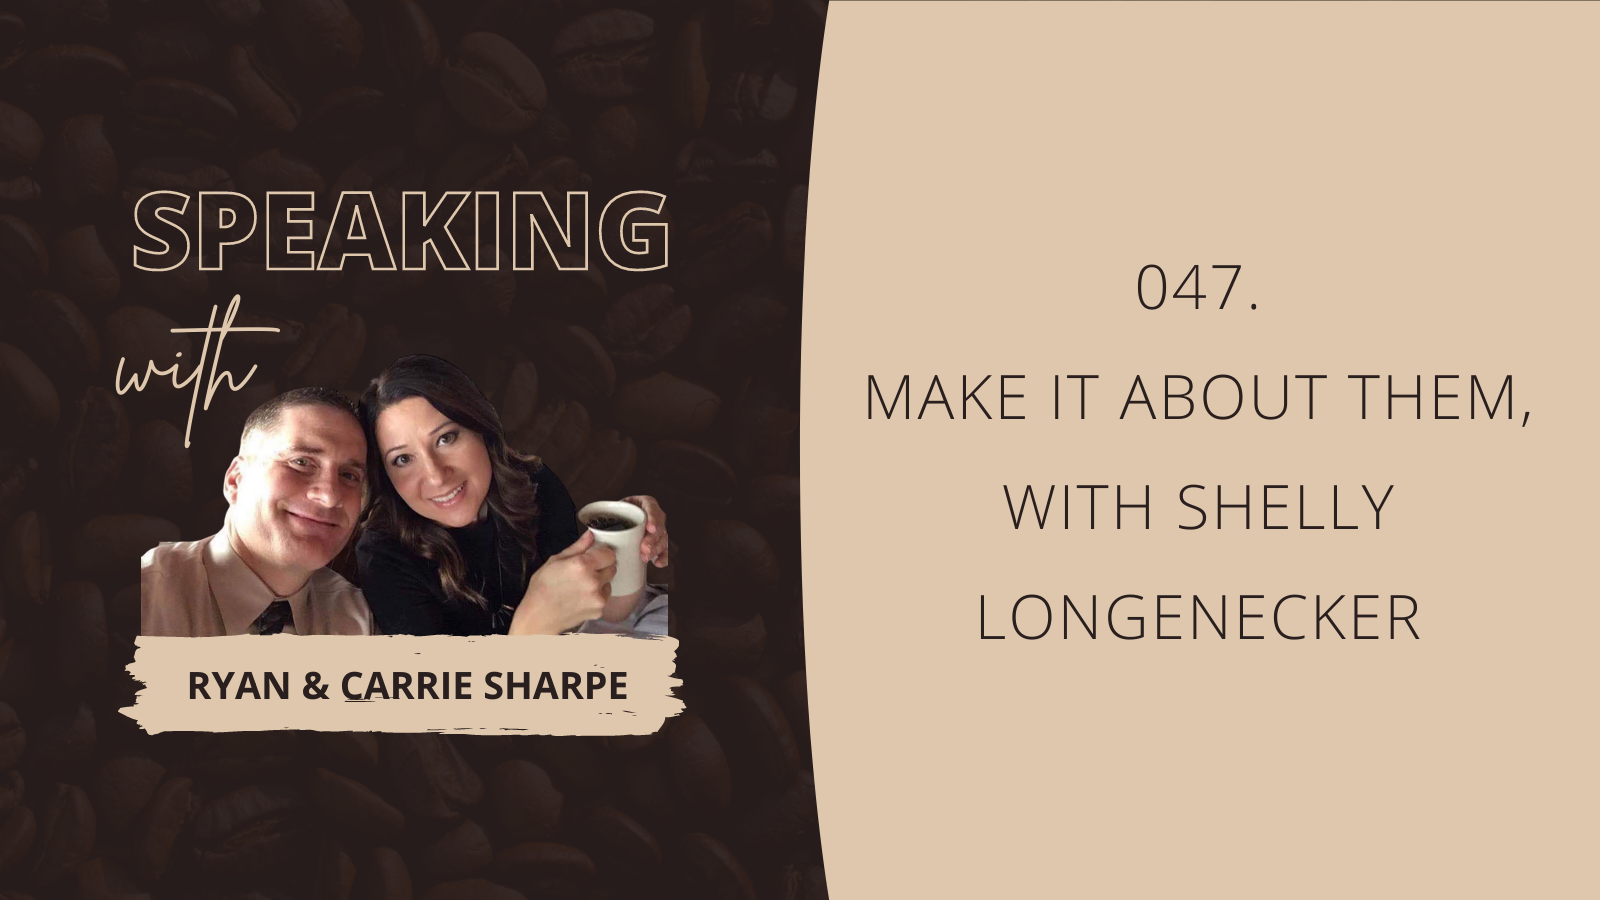 047. Make It All About Them, with Shelly Longenecker [COMMUNICATION FOUNDATION SERIES] | Speaking with Ryan & Carrie Sharpe podcast